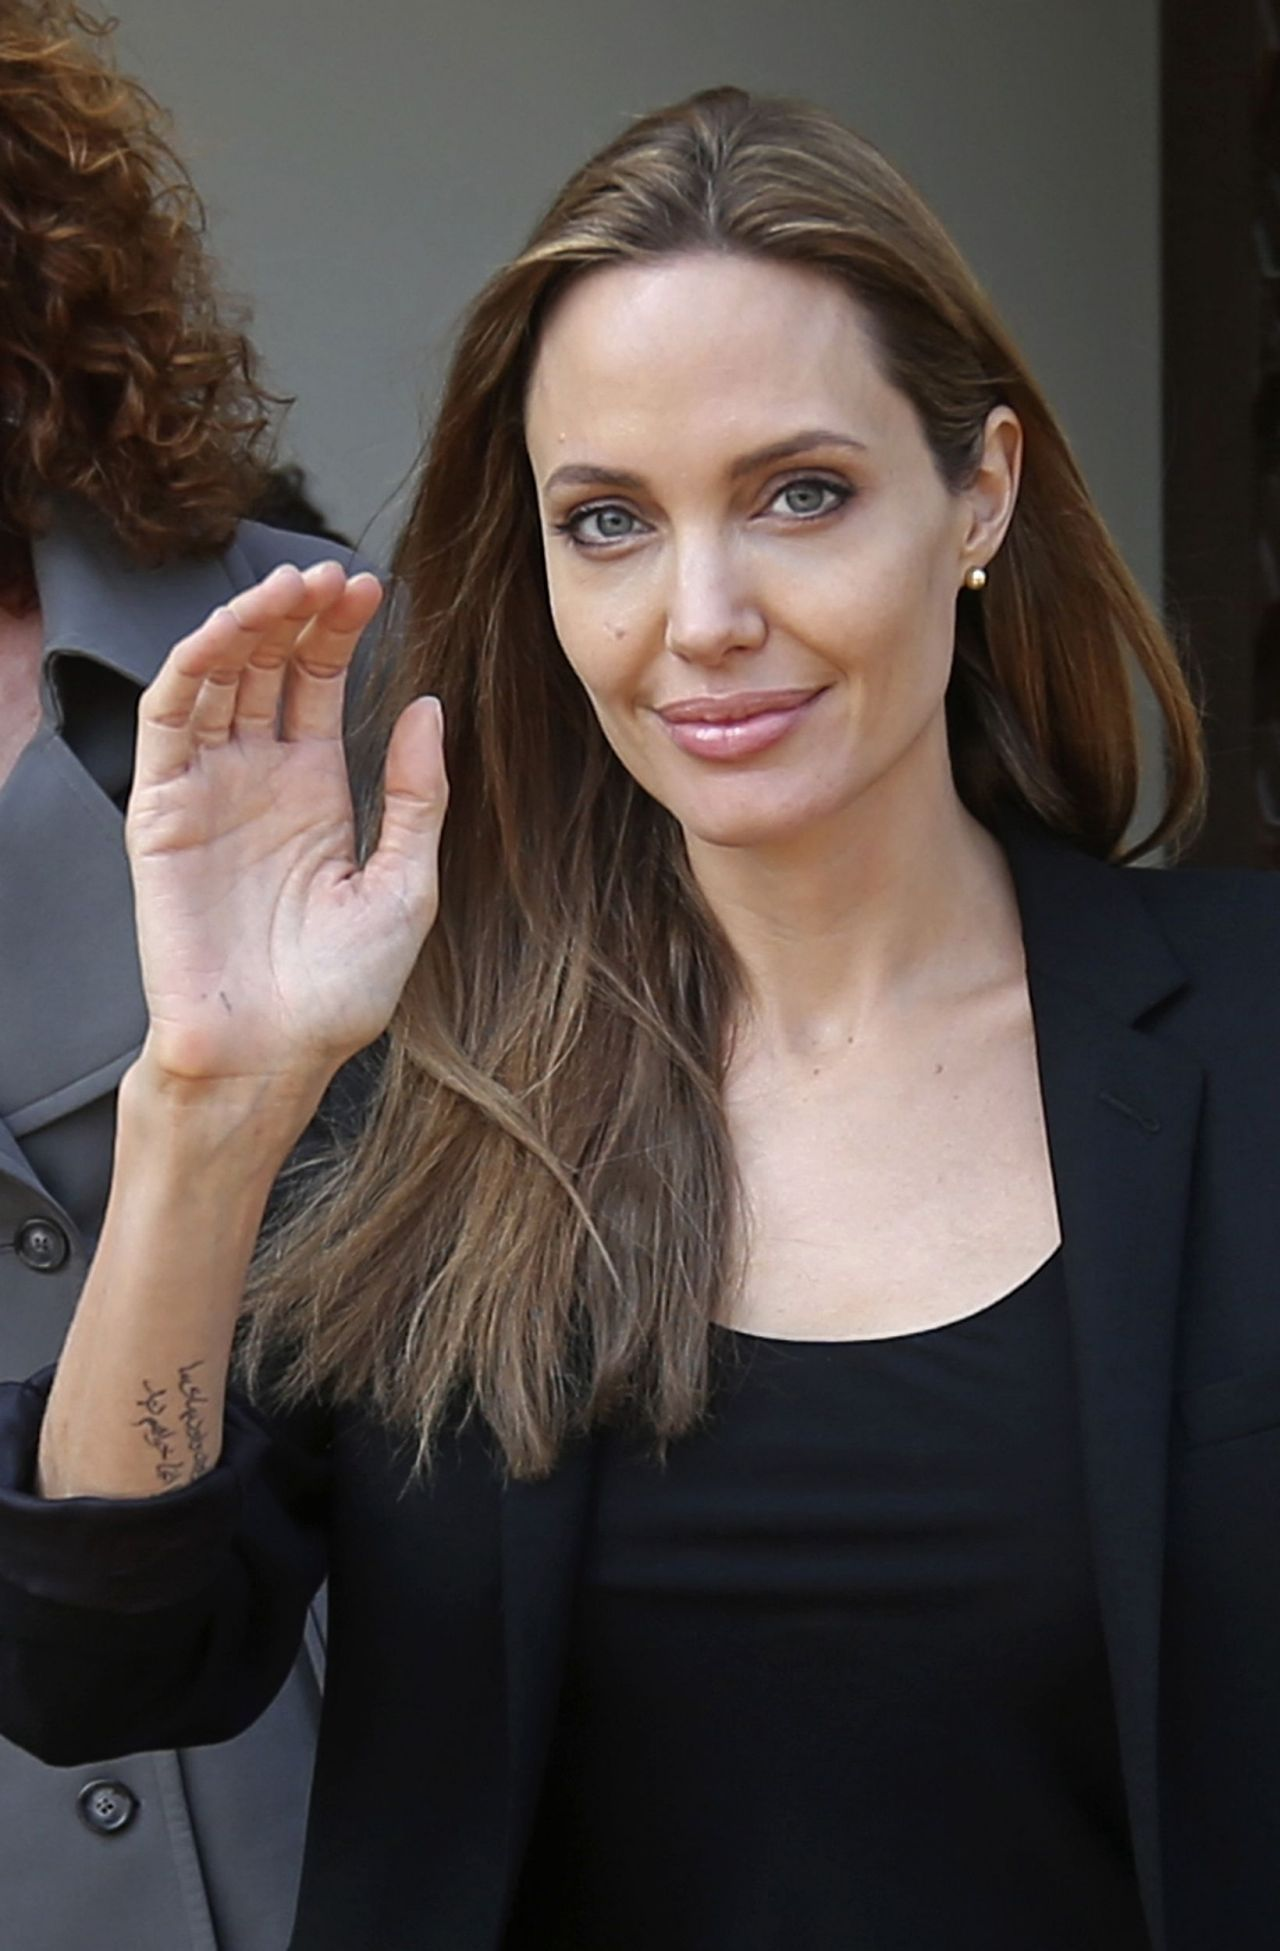 Angelina Jolie in Beirut - February 2014